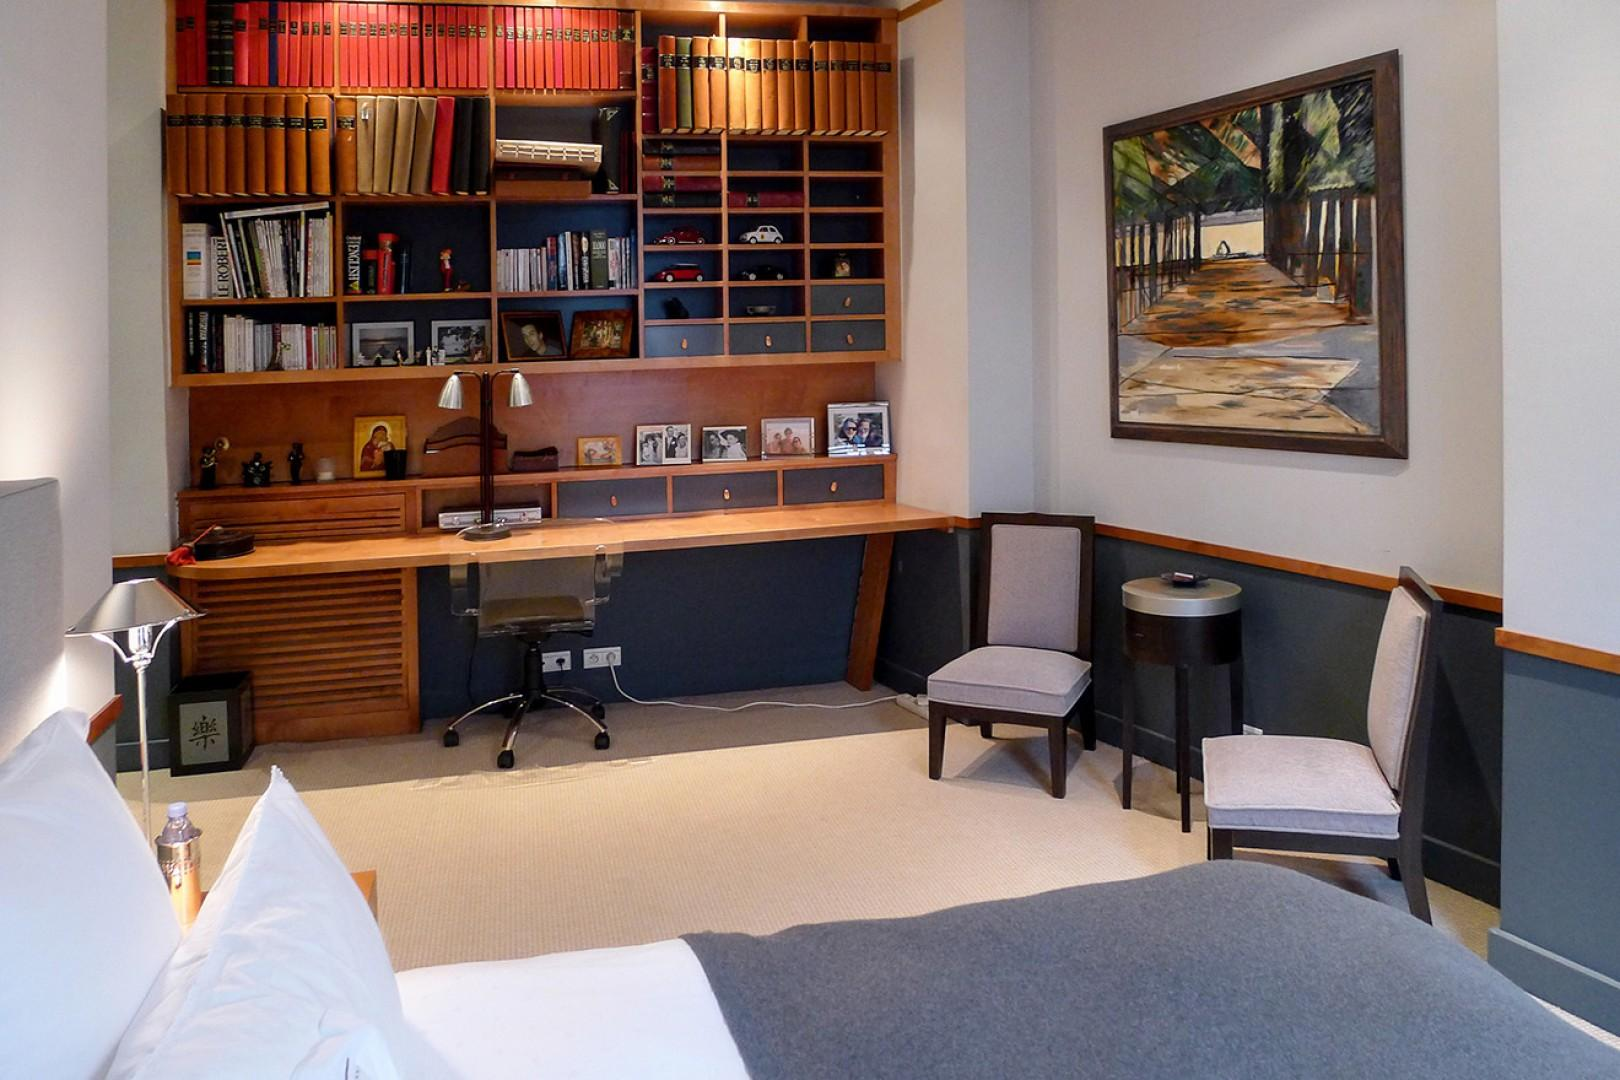 Bedroom 3 features a built-in desk and study area.